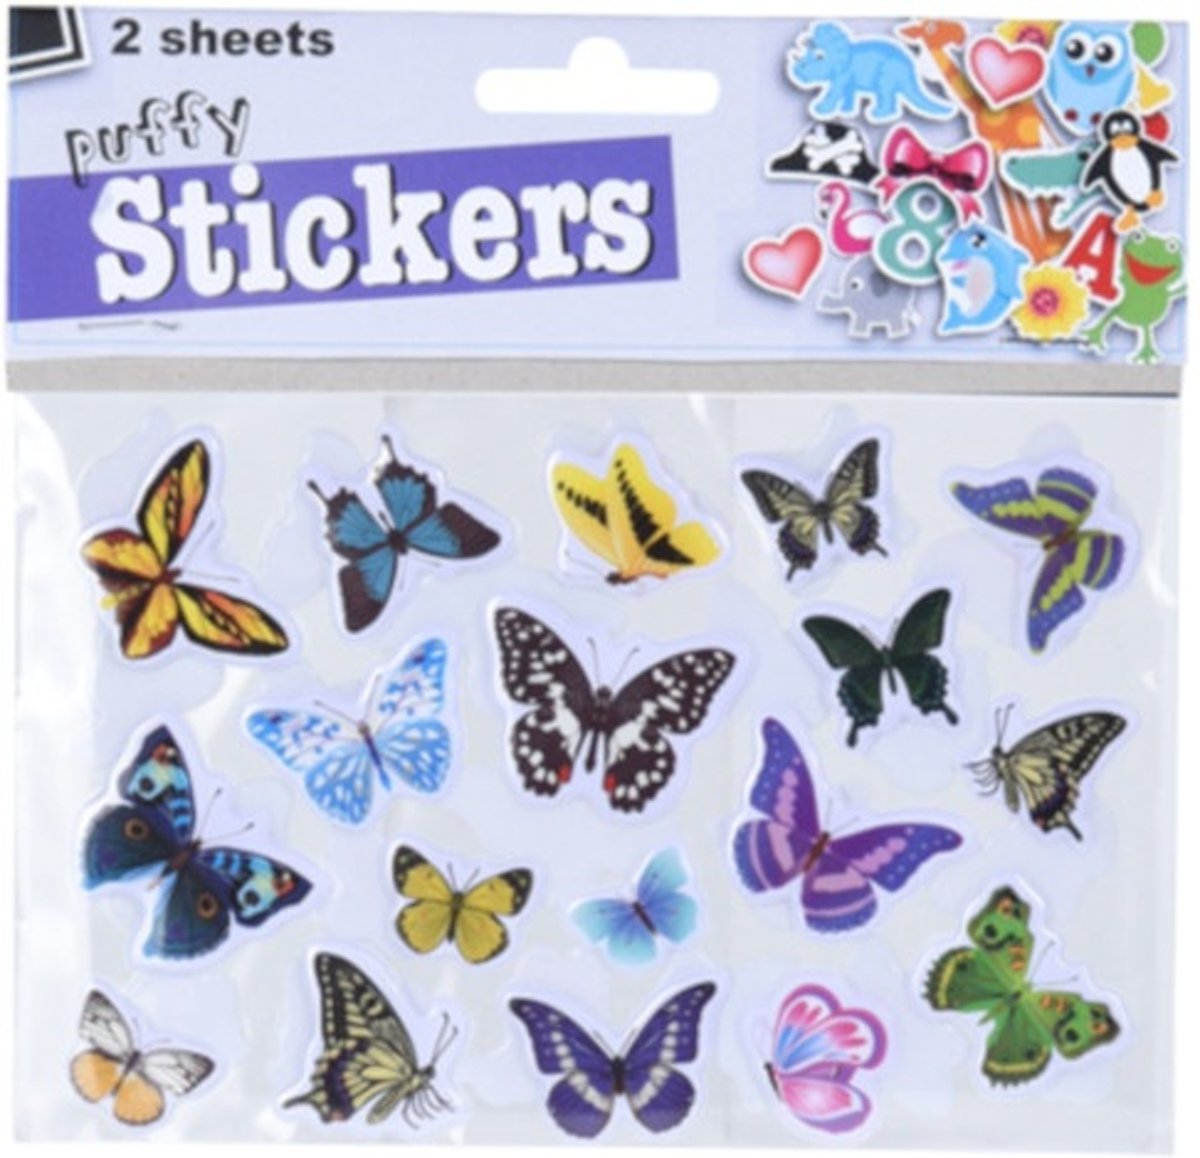 Free And Easy 3d Stickers Vlinders Bloemen 2 Vellen